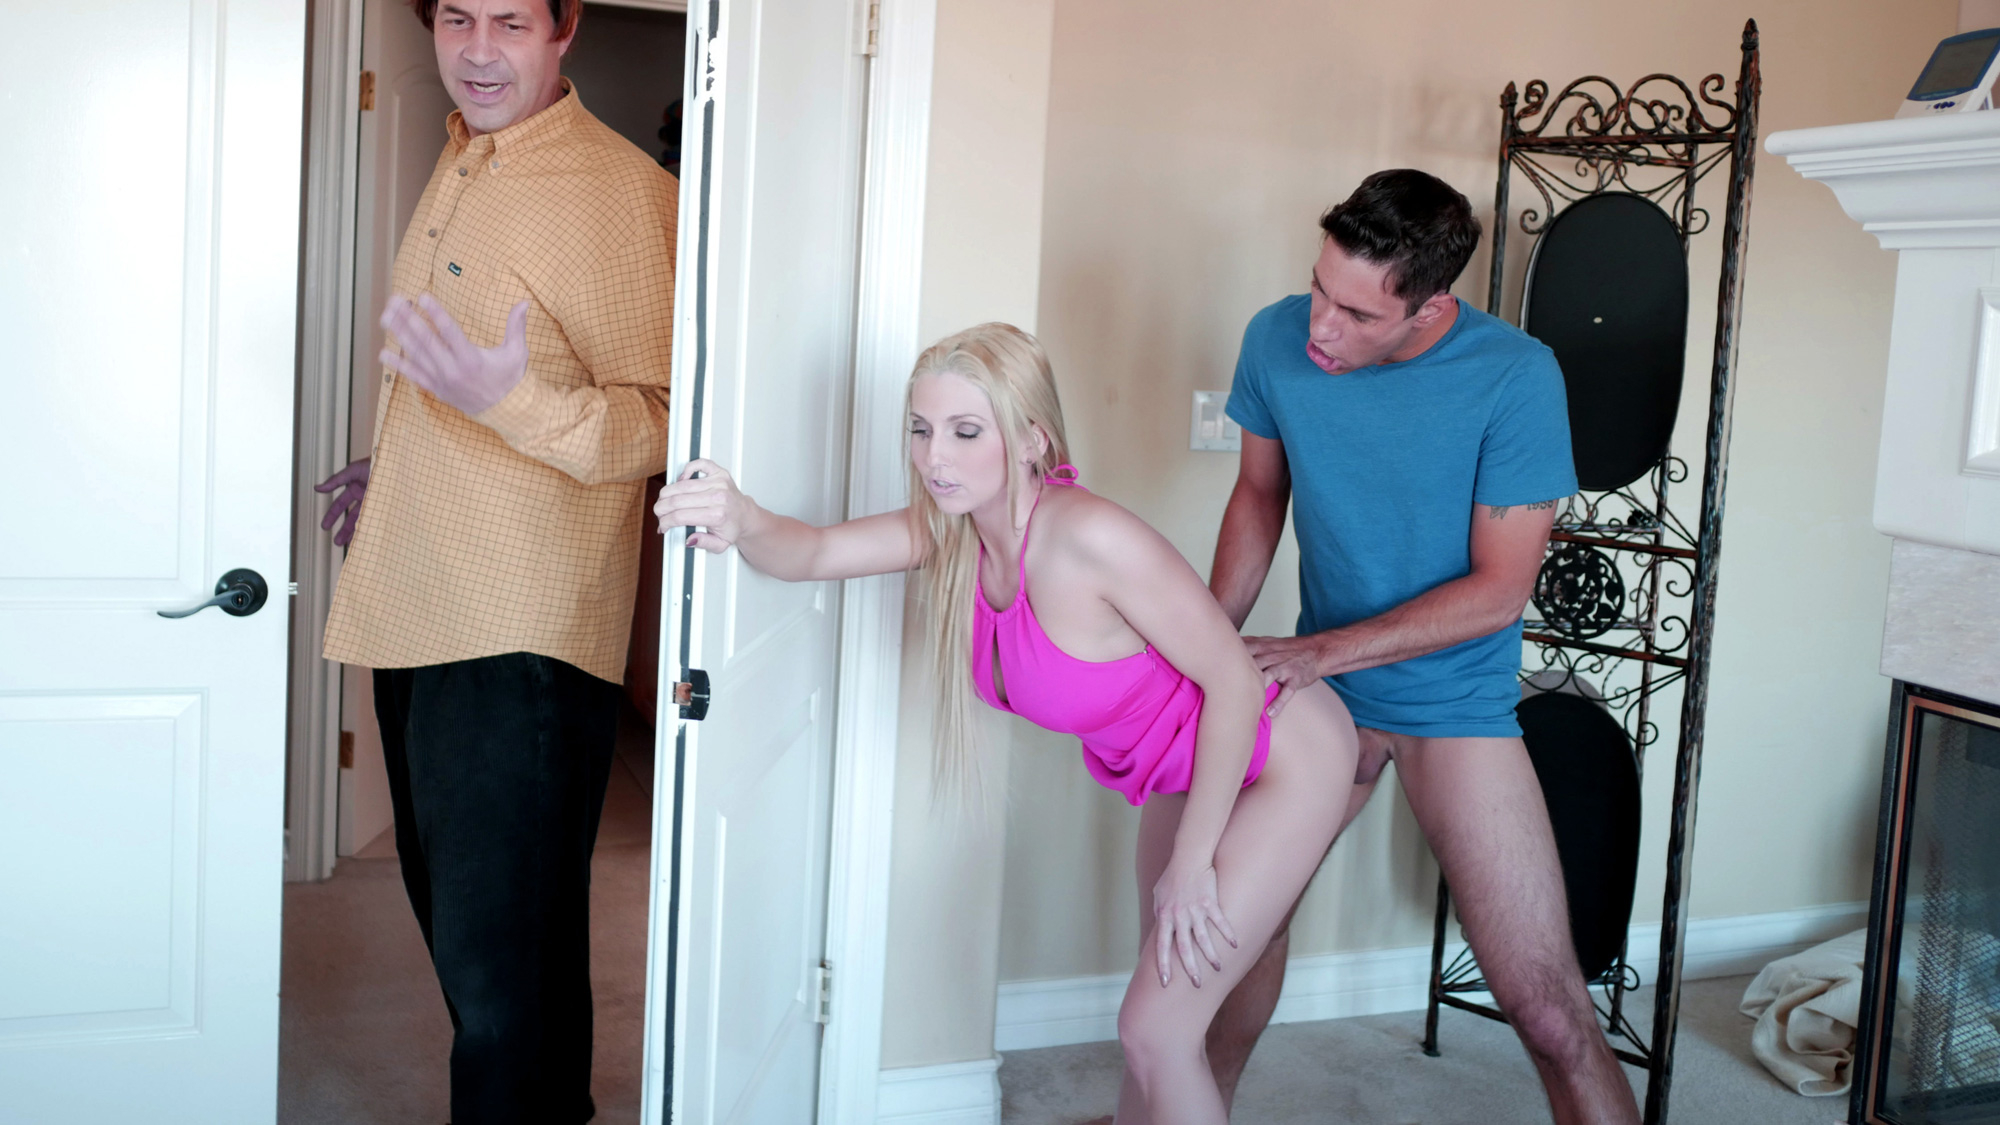 Hd my shemale stepmom gets her ass fucked